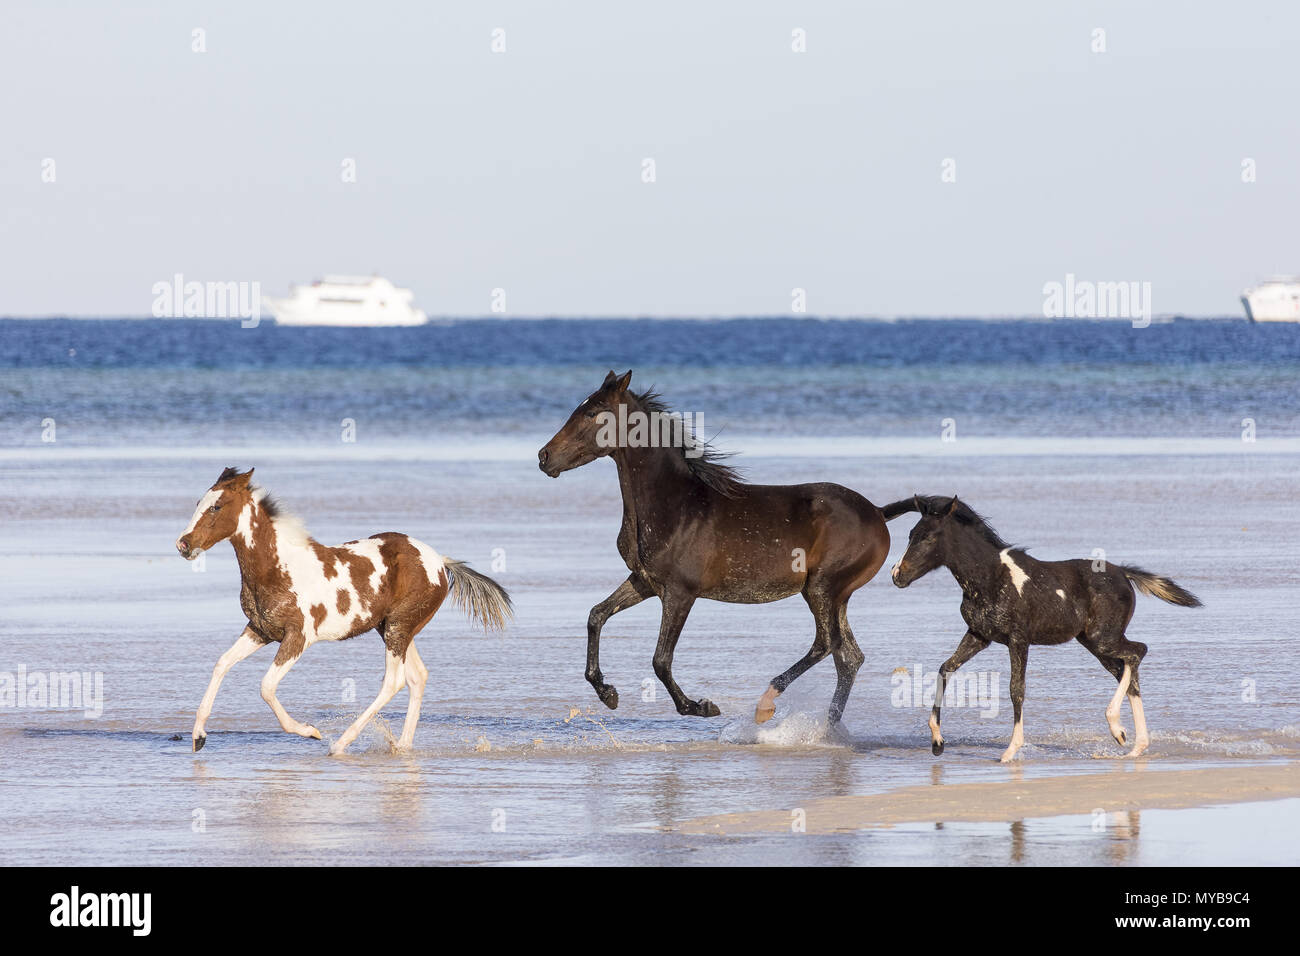 Barb horse. Bay horse and Pinto foals galloping in shallow water. Egypt. - Stock Image